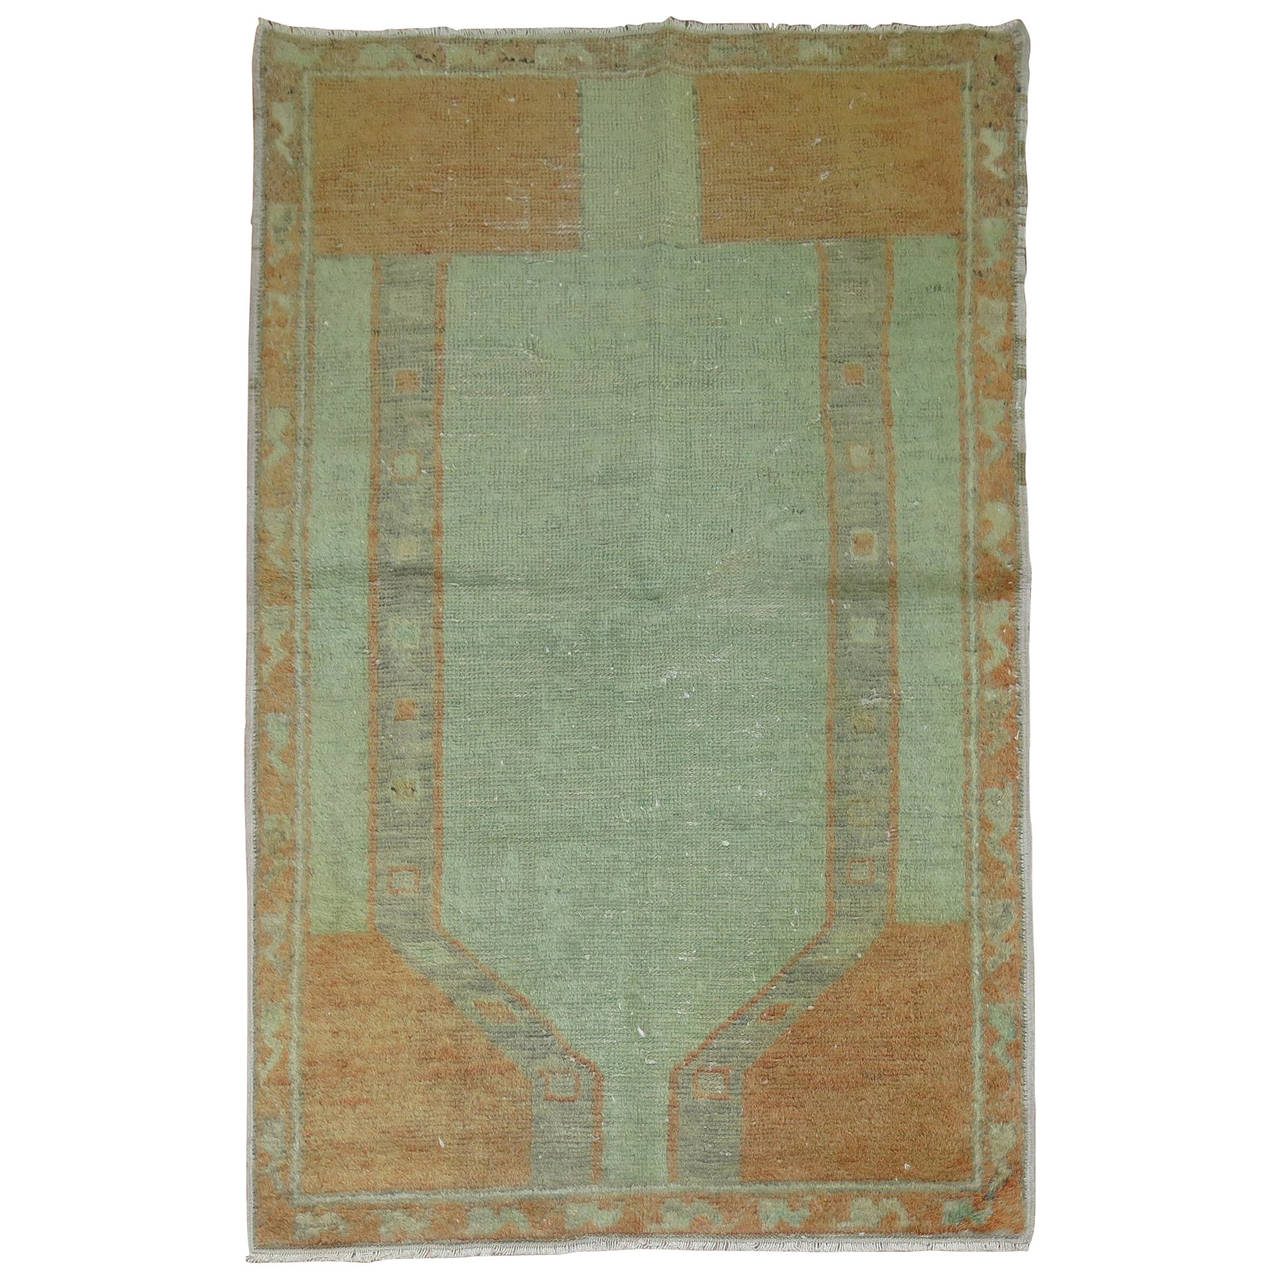 midcentury modern turkish rug at stdibs - midcentury modern turkish rug